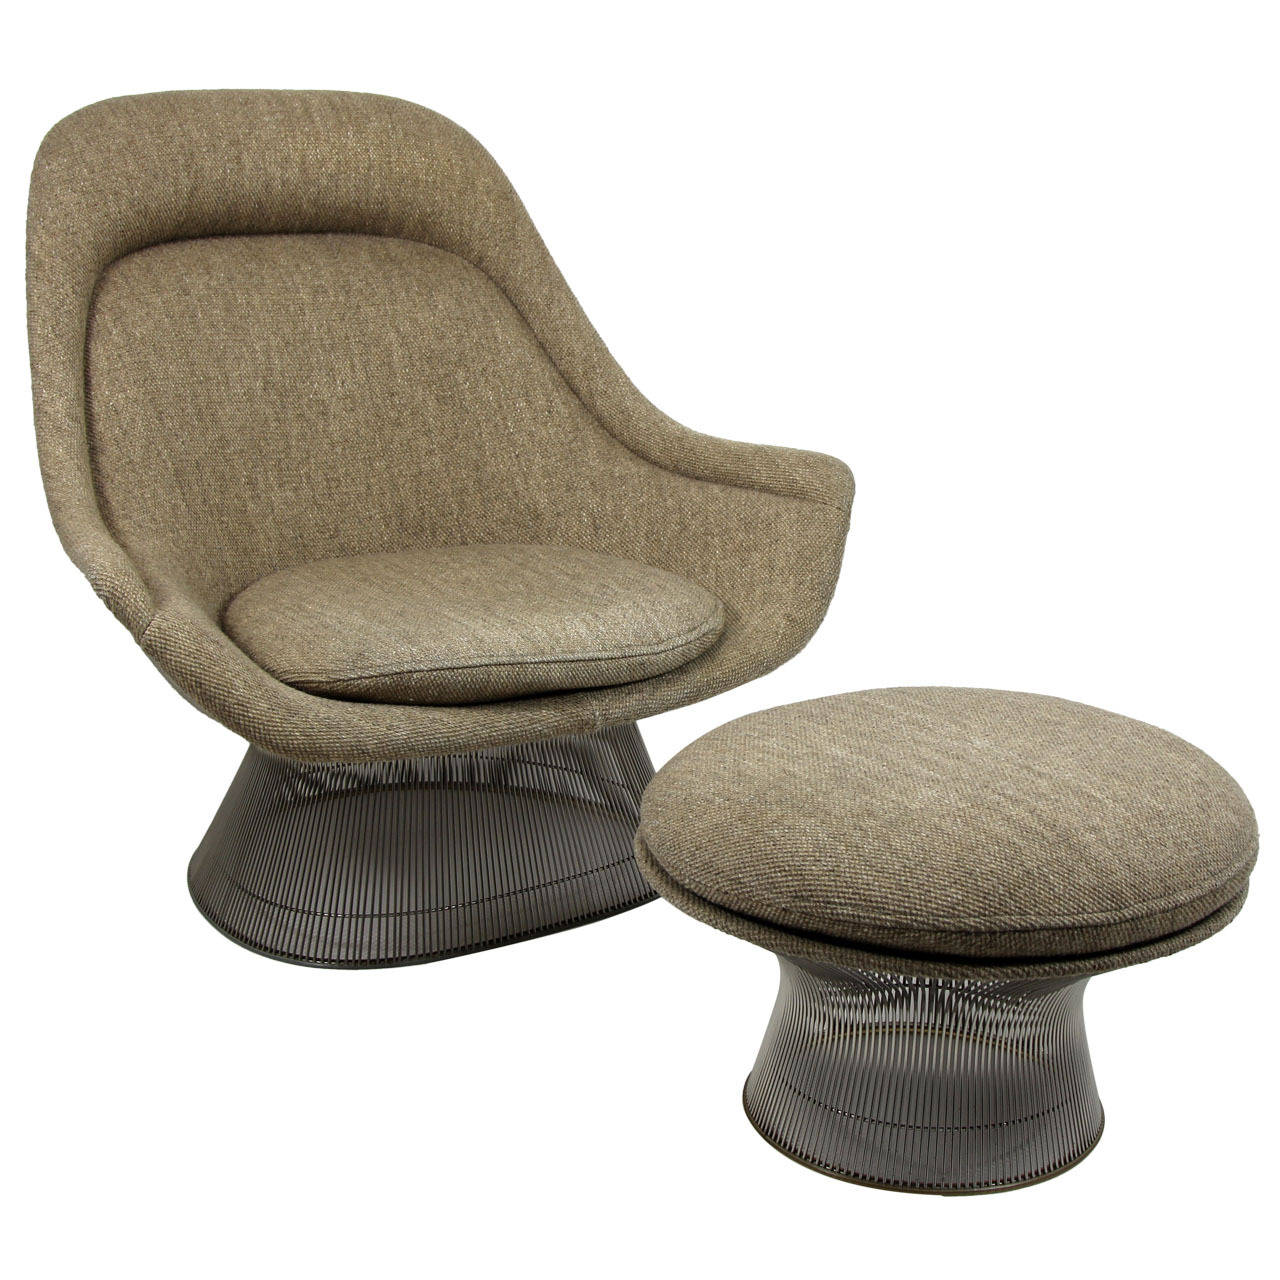 warren platner for knoll easy chair lounge and ottoman at 1stdibs